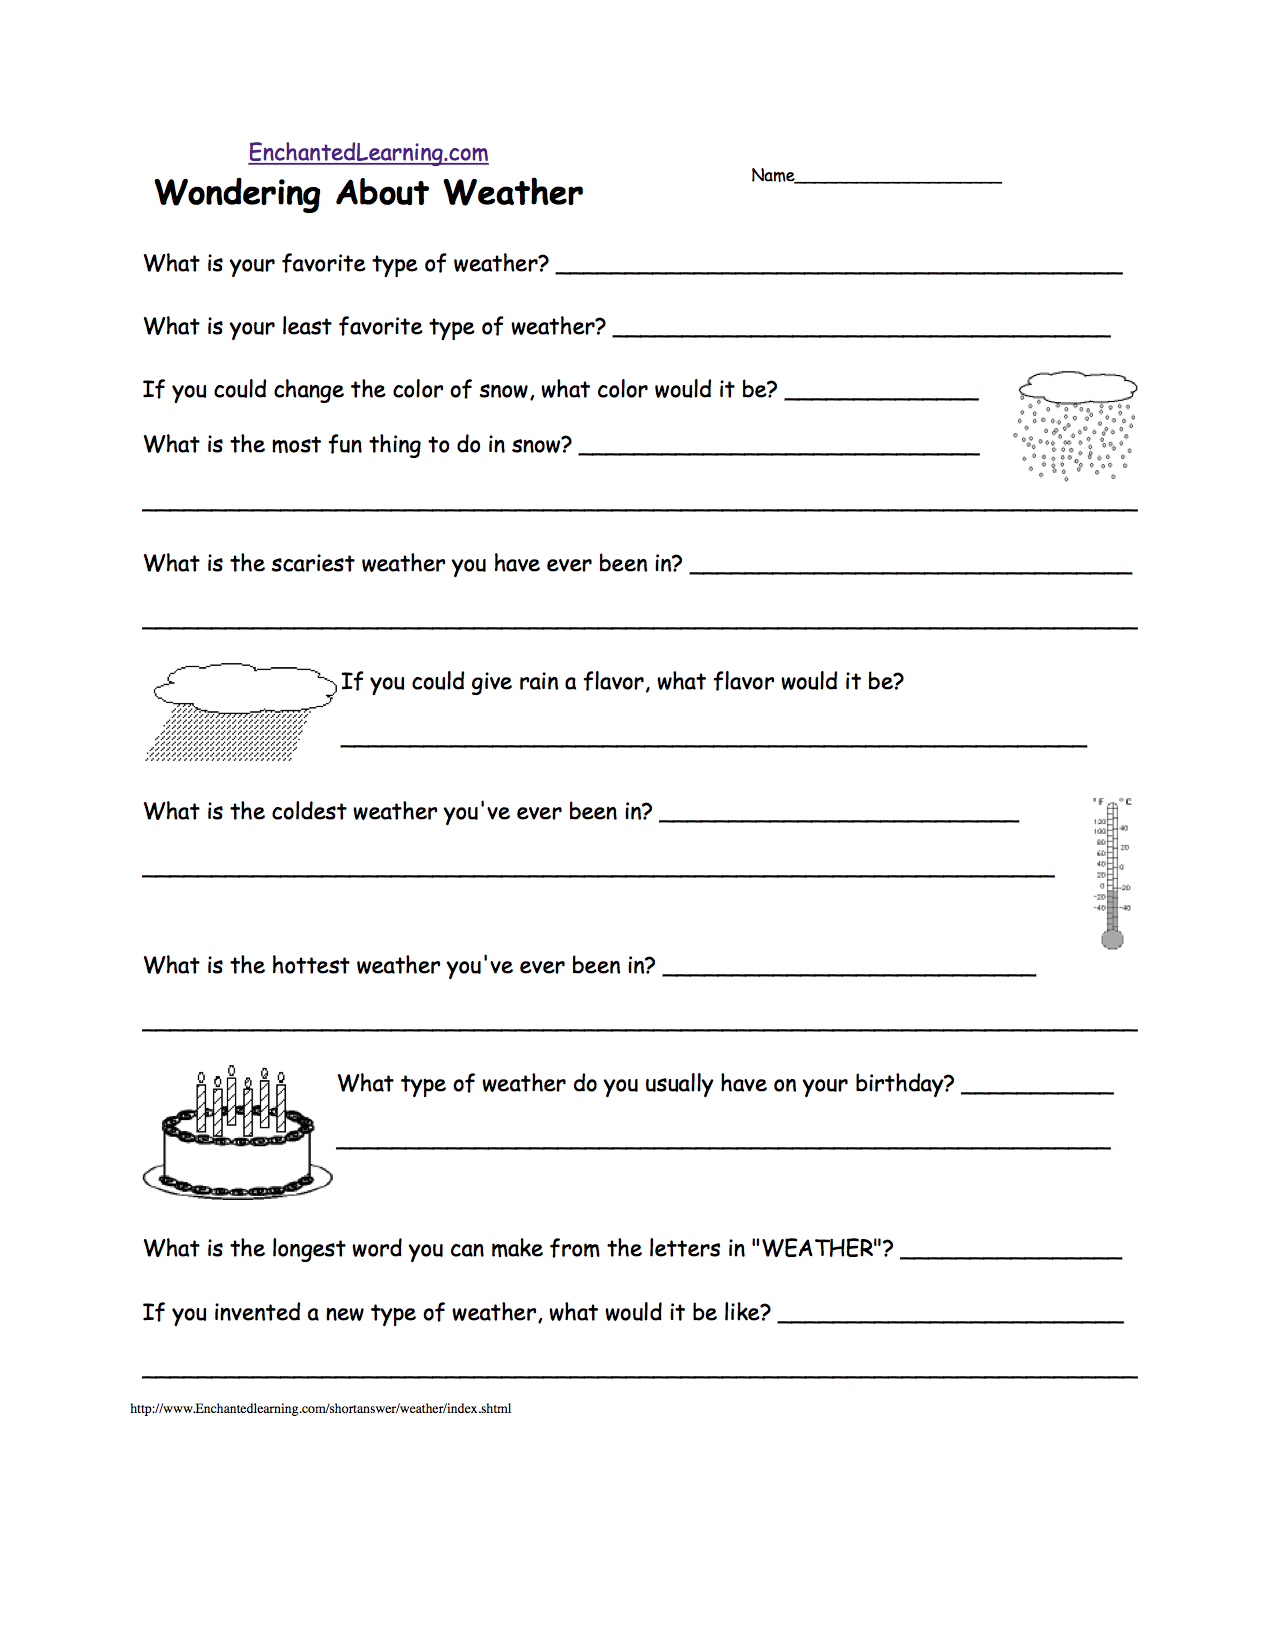 Worksheet Science Weather Worksheets weather related writing activities at enchantedlearning com weather